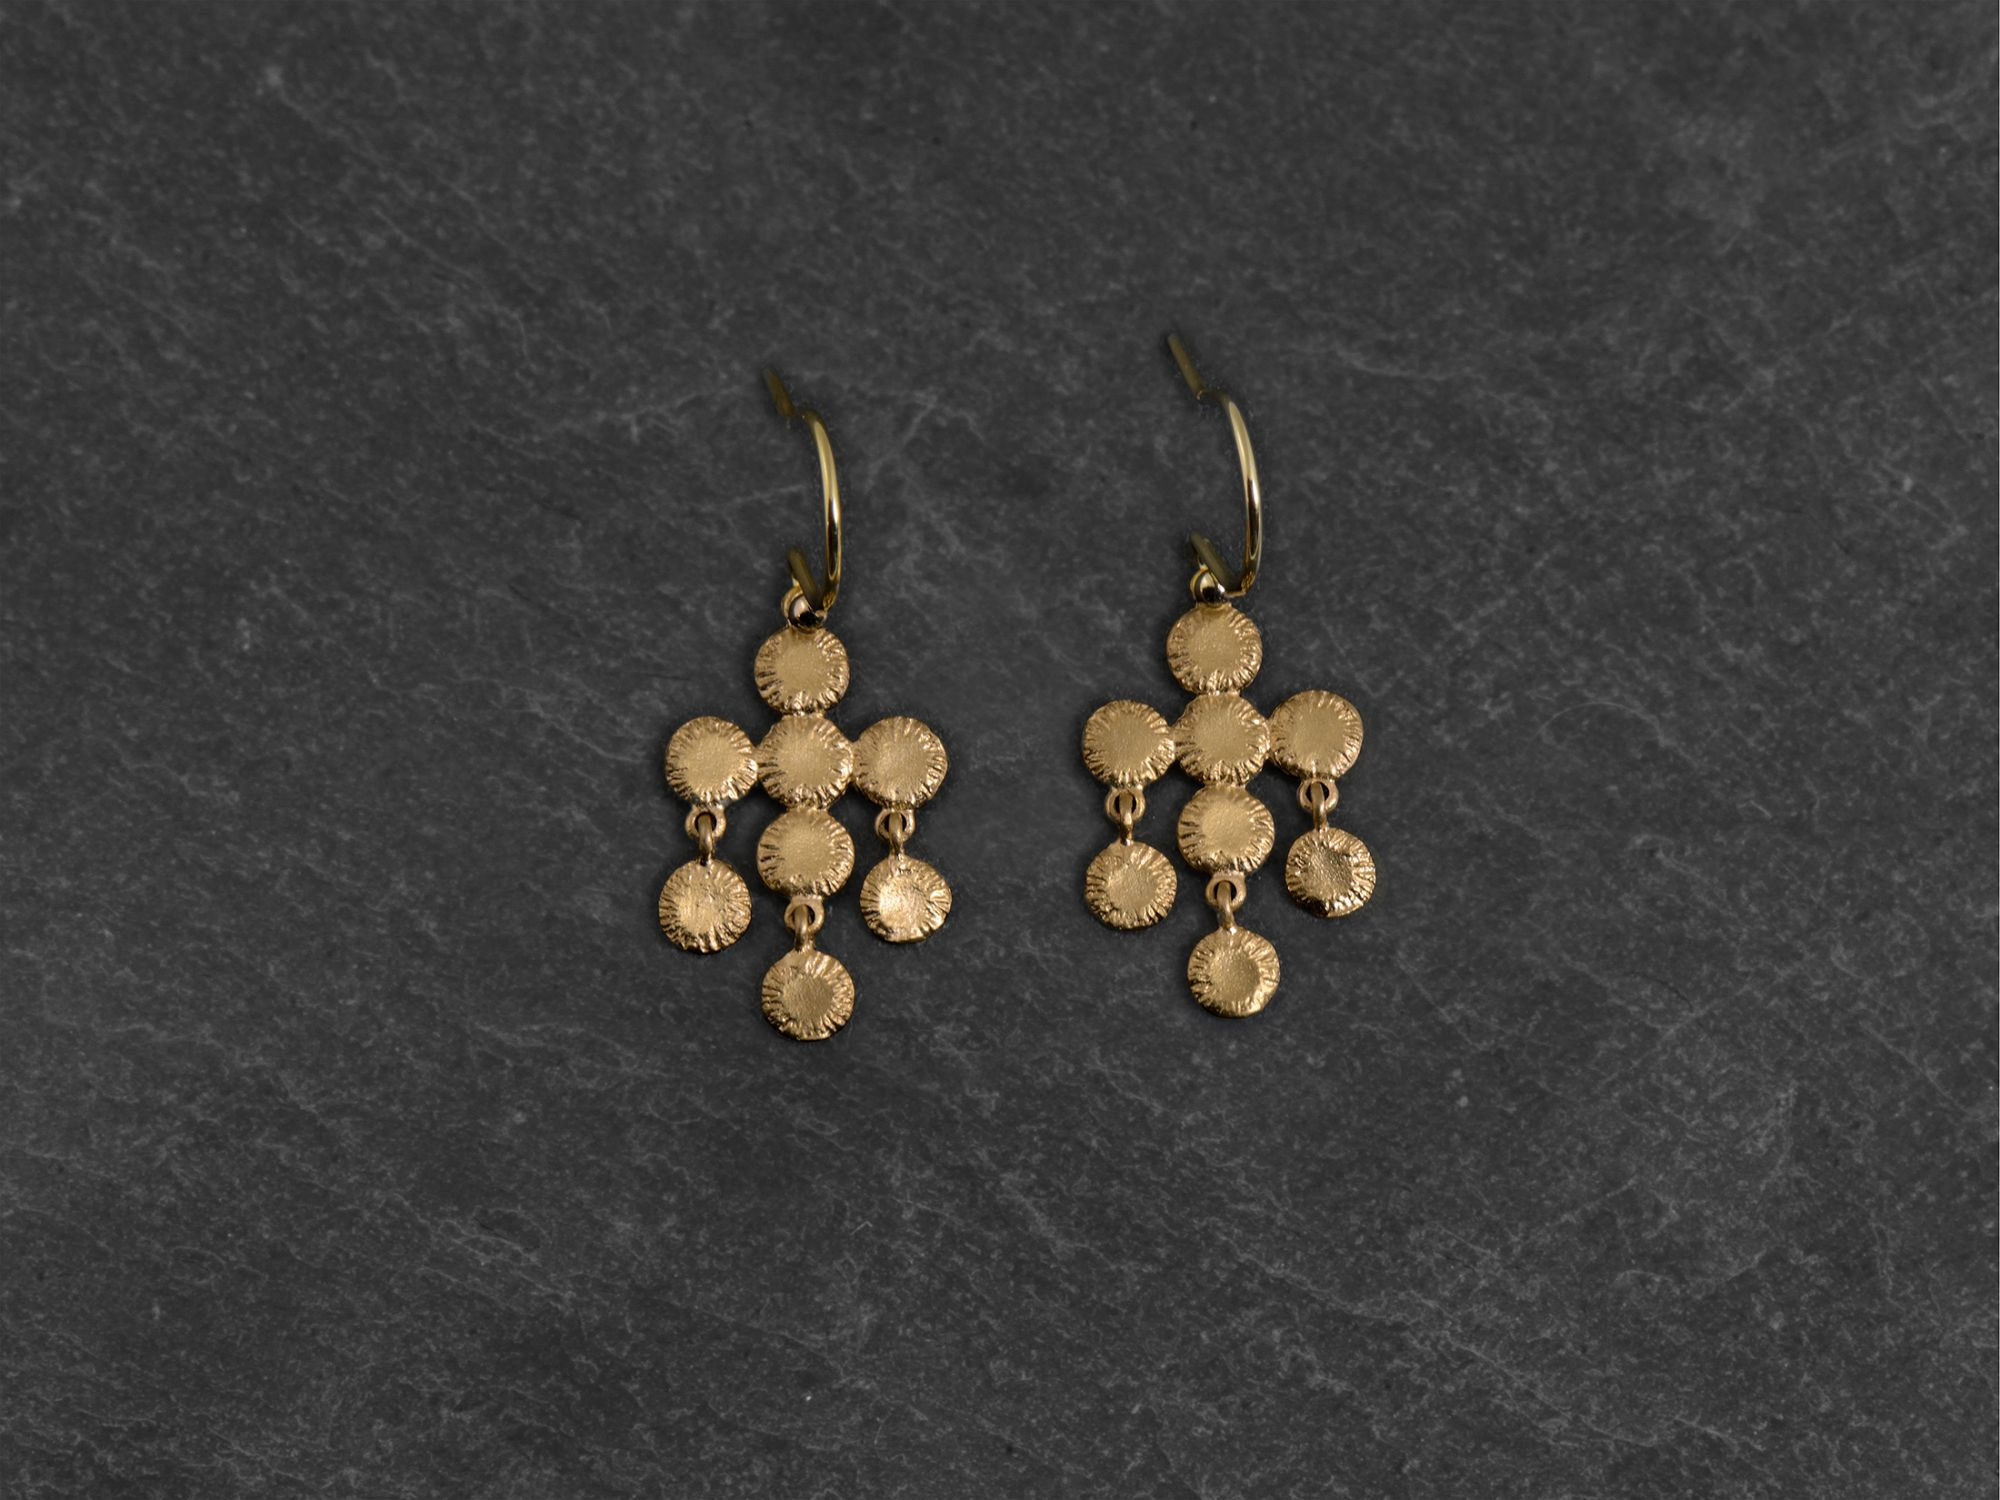 Ithaque vermeil earrings by Emmanuelle Zysman